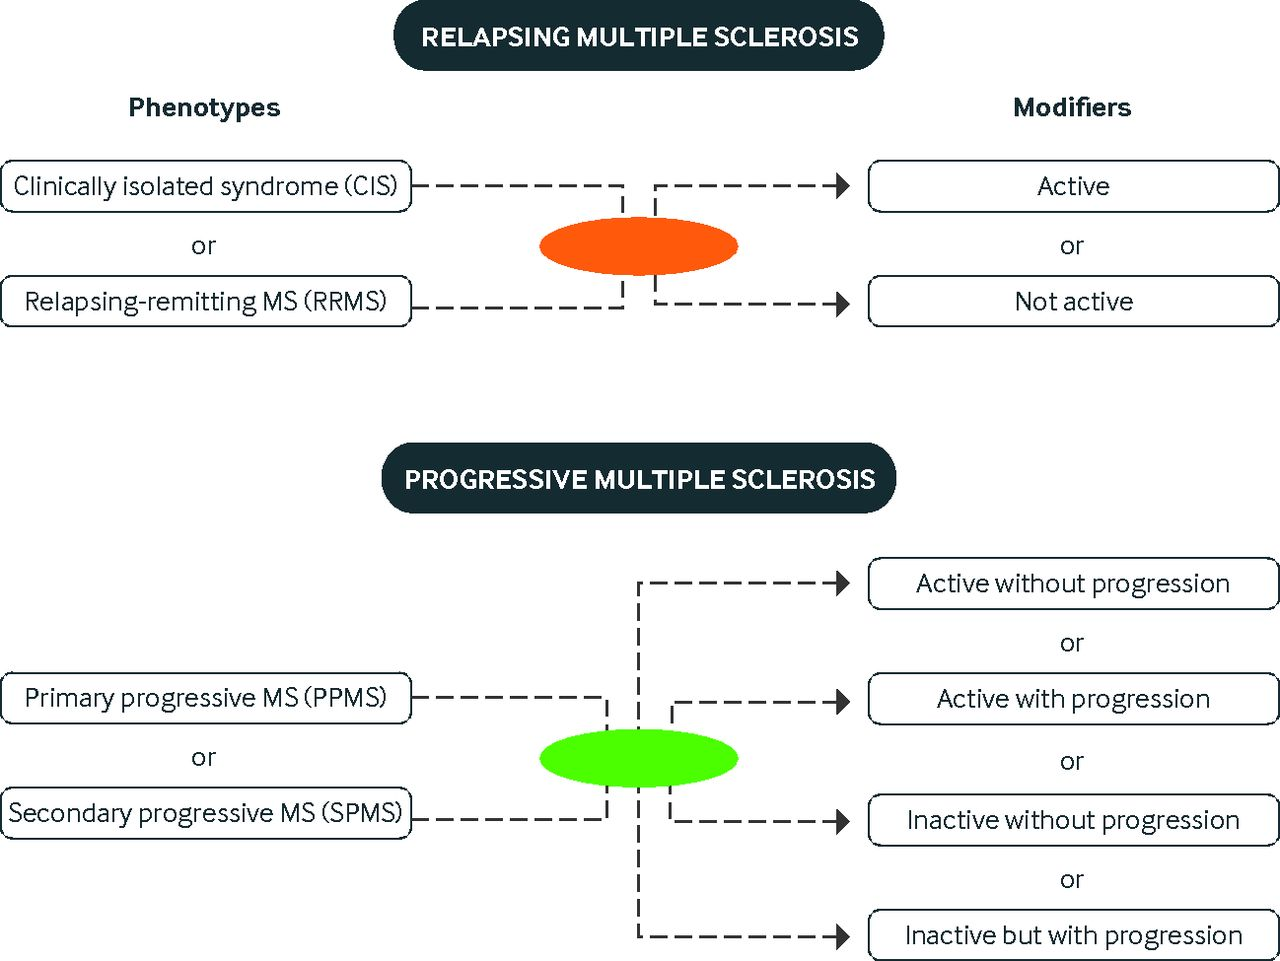 Disease modifying therapies for relapsing multiple sclerosis